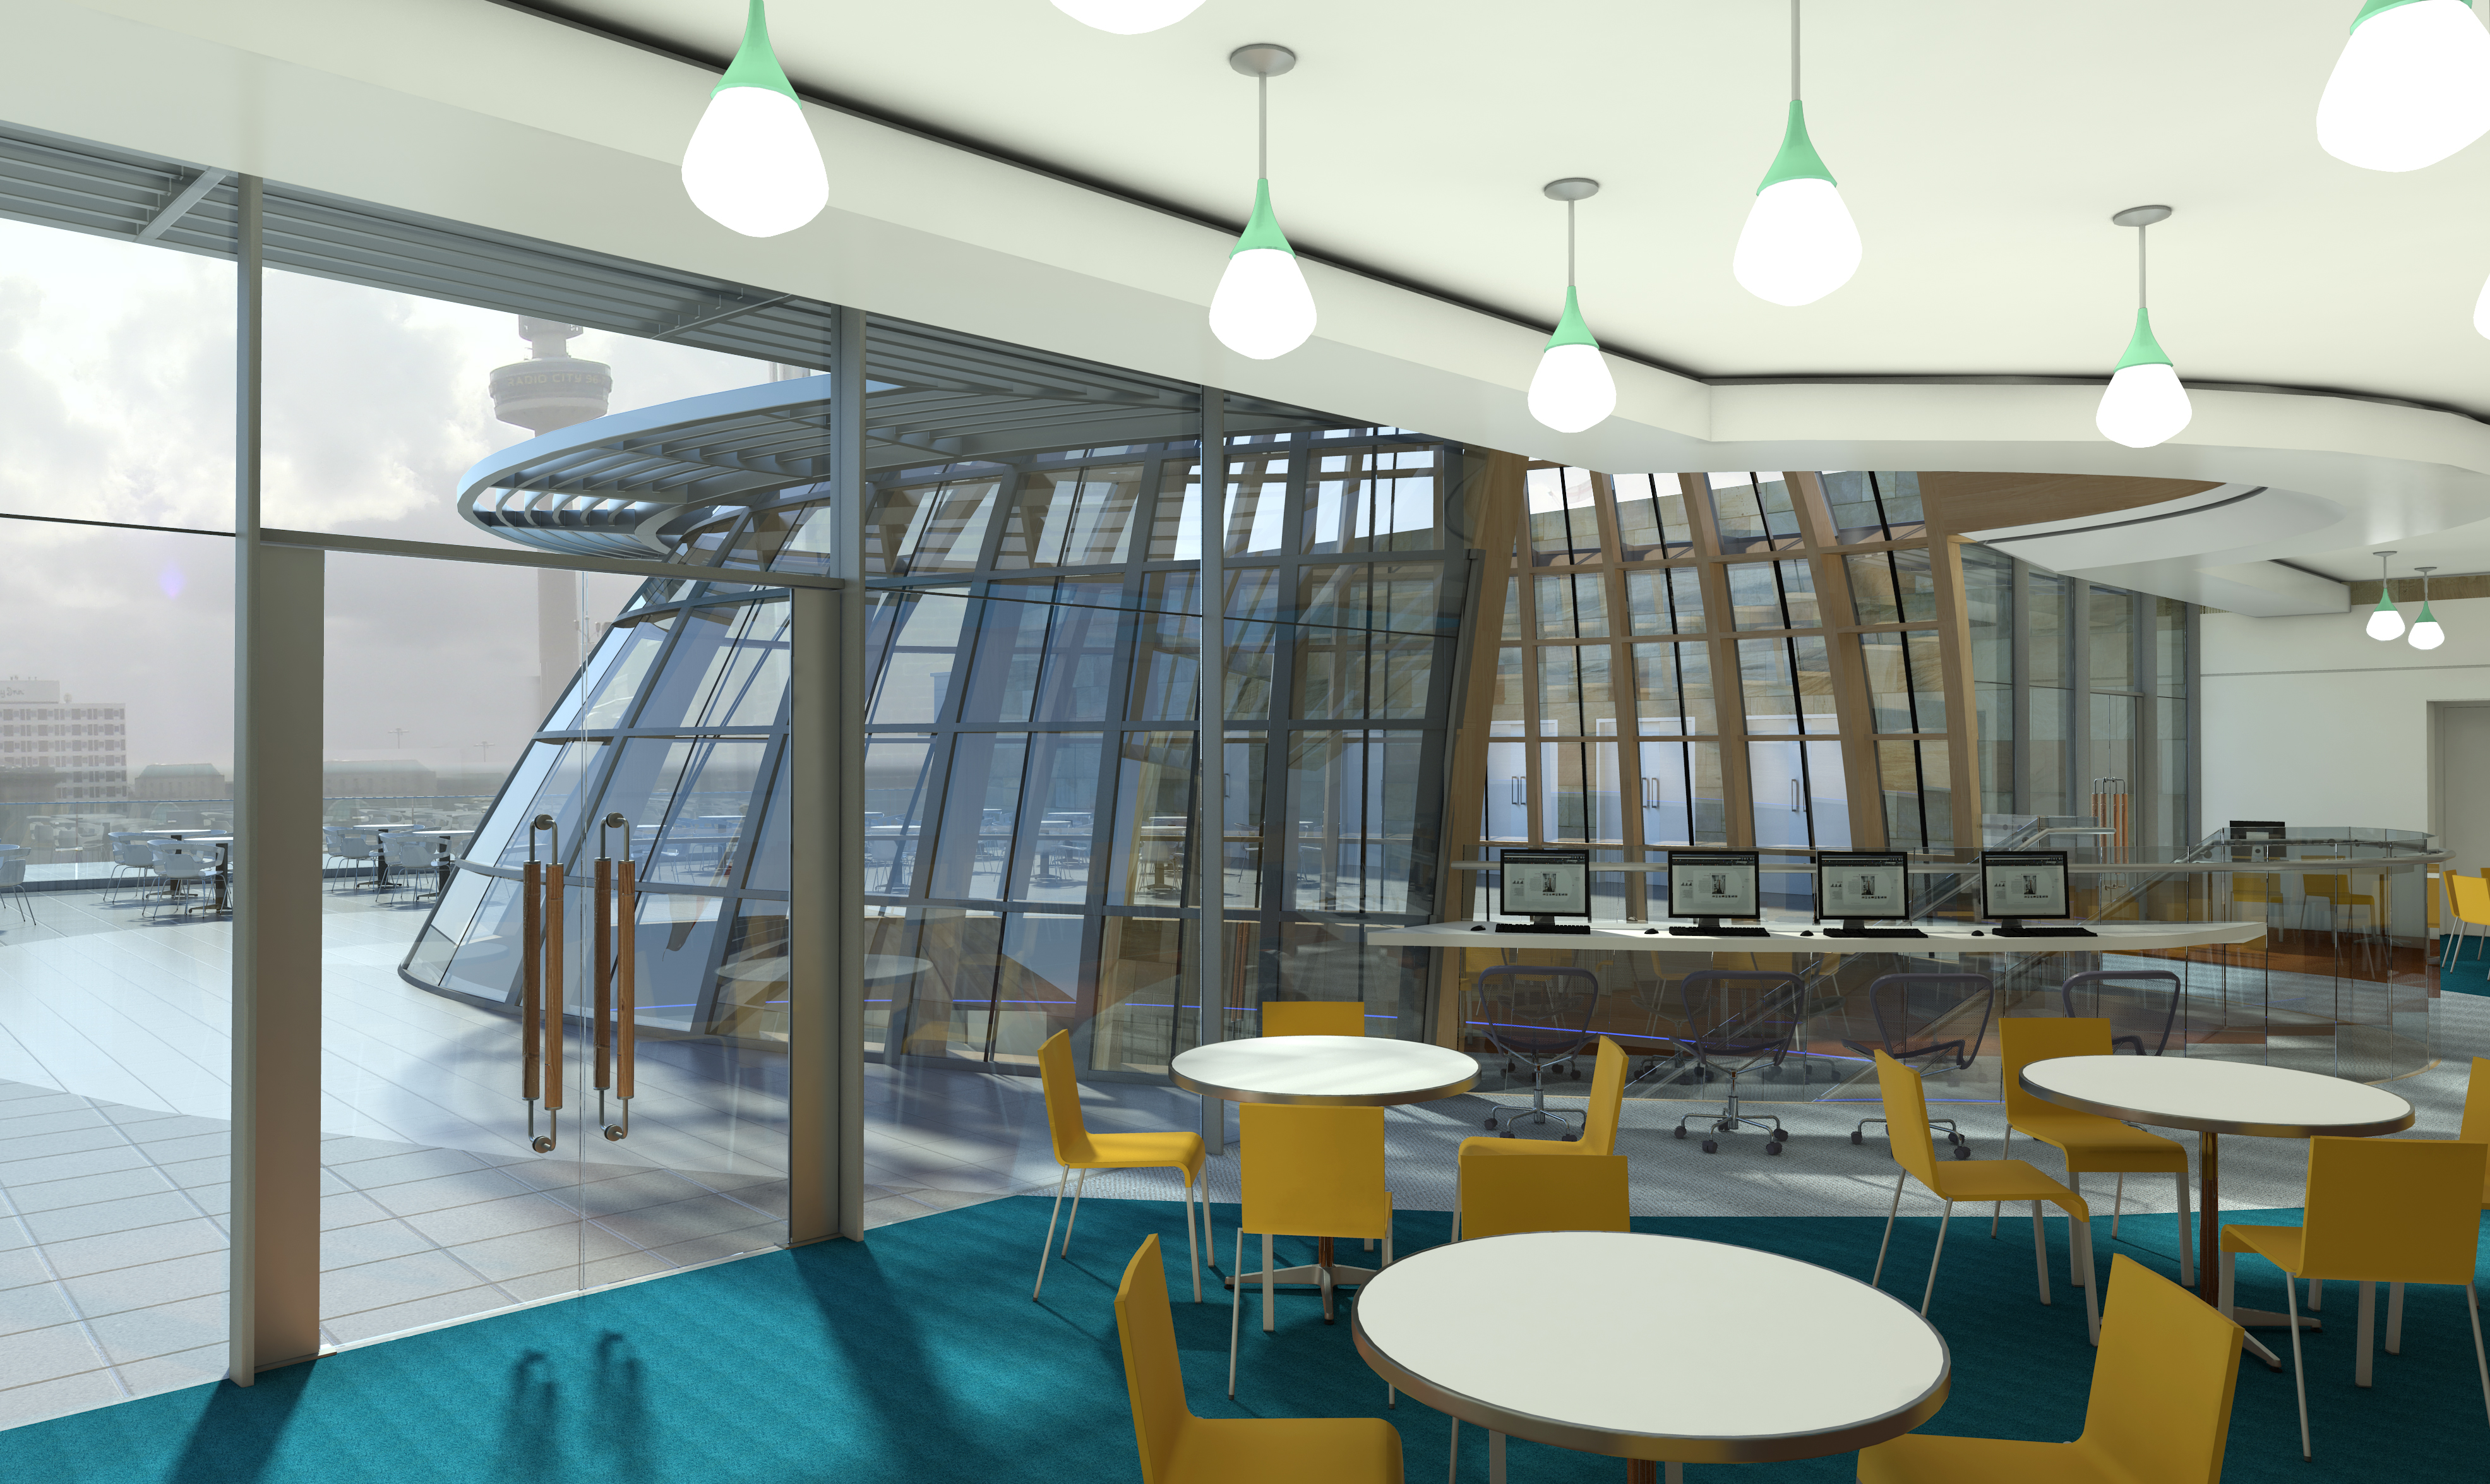 Artist impression of the fifth floor learning centre including rooftop glass dome